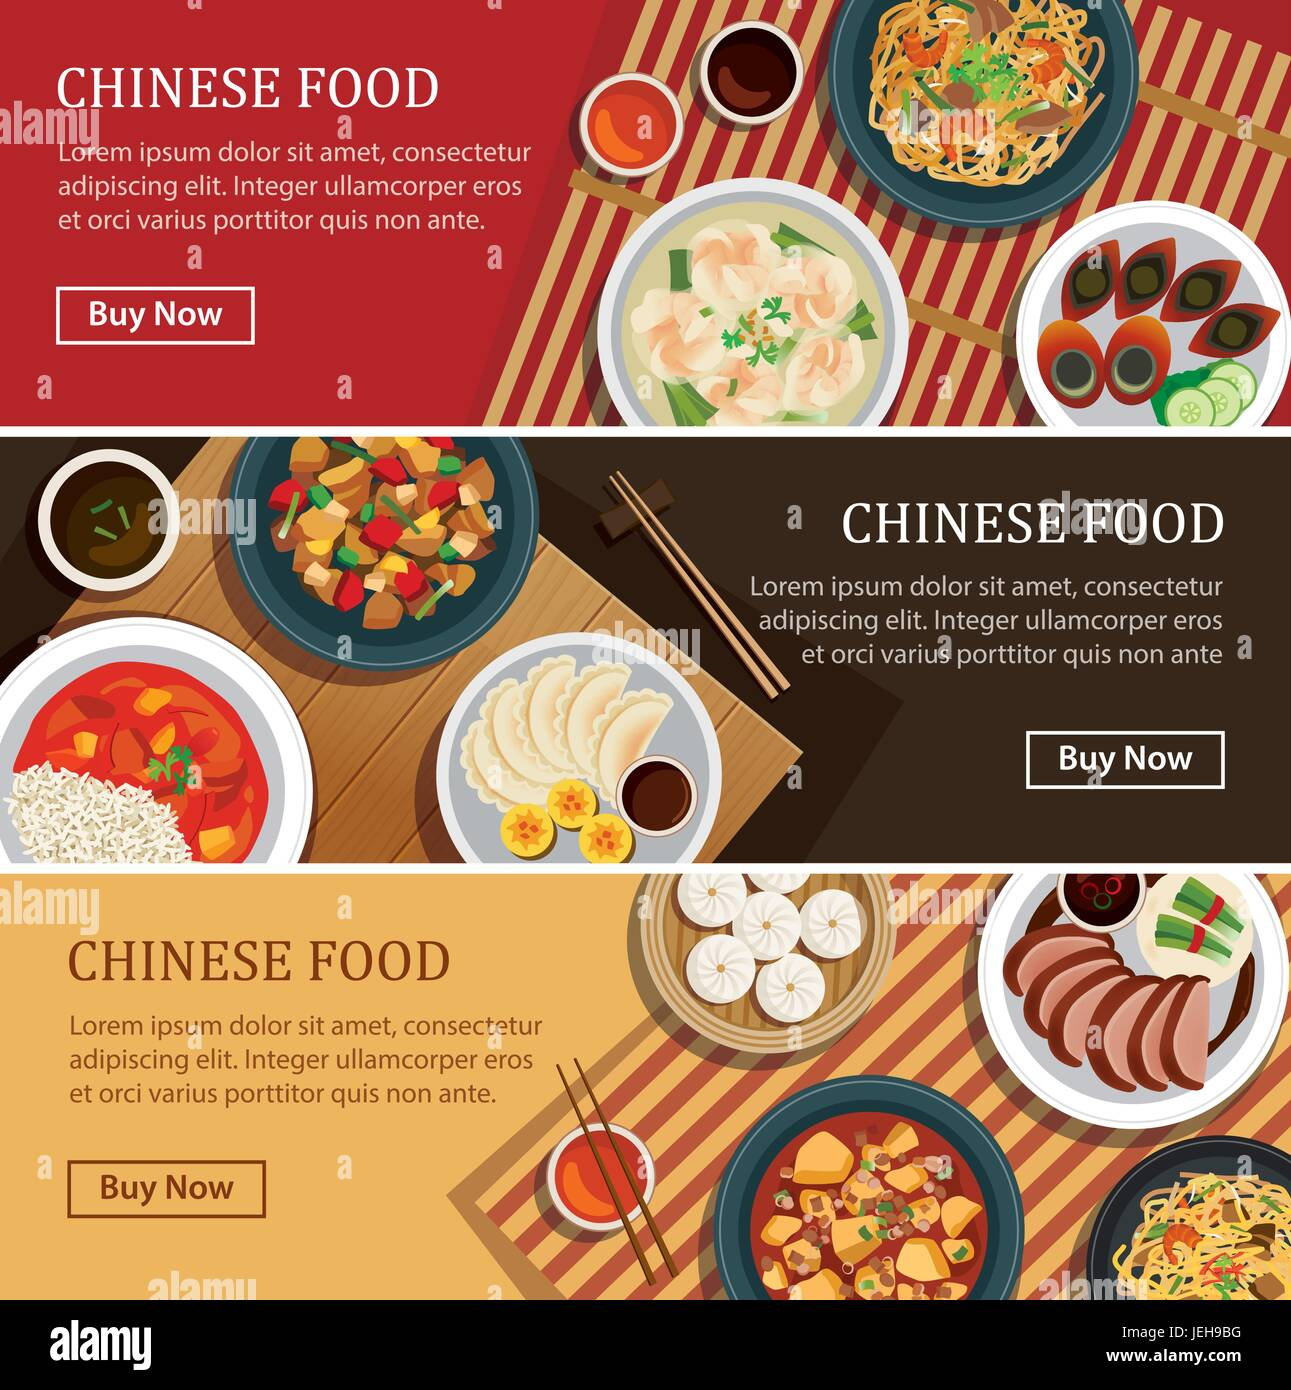 Chinese food web banner.Chinese street food coupon. - Stock Vector